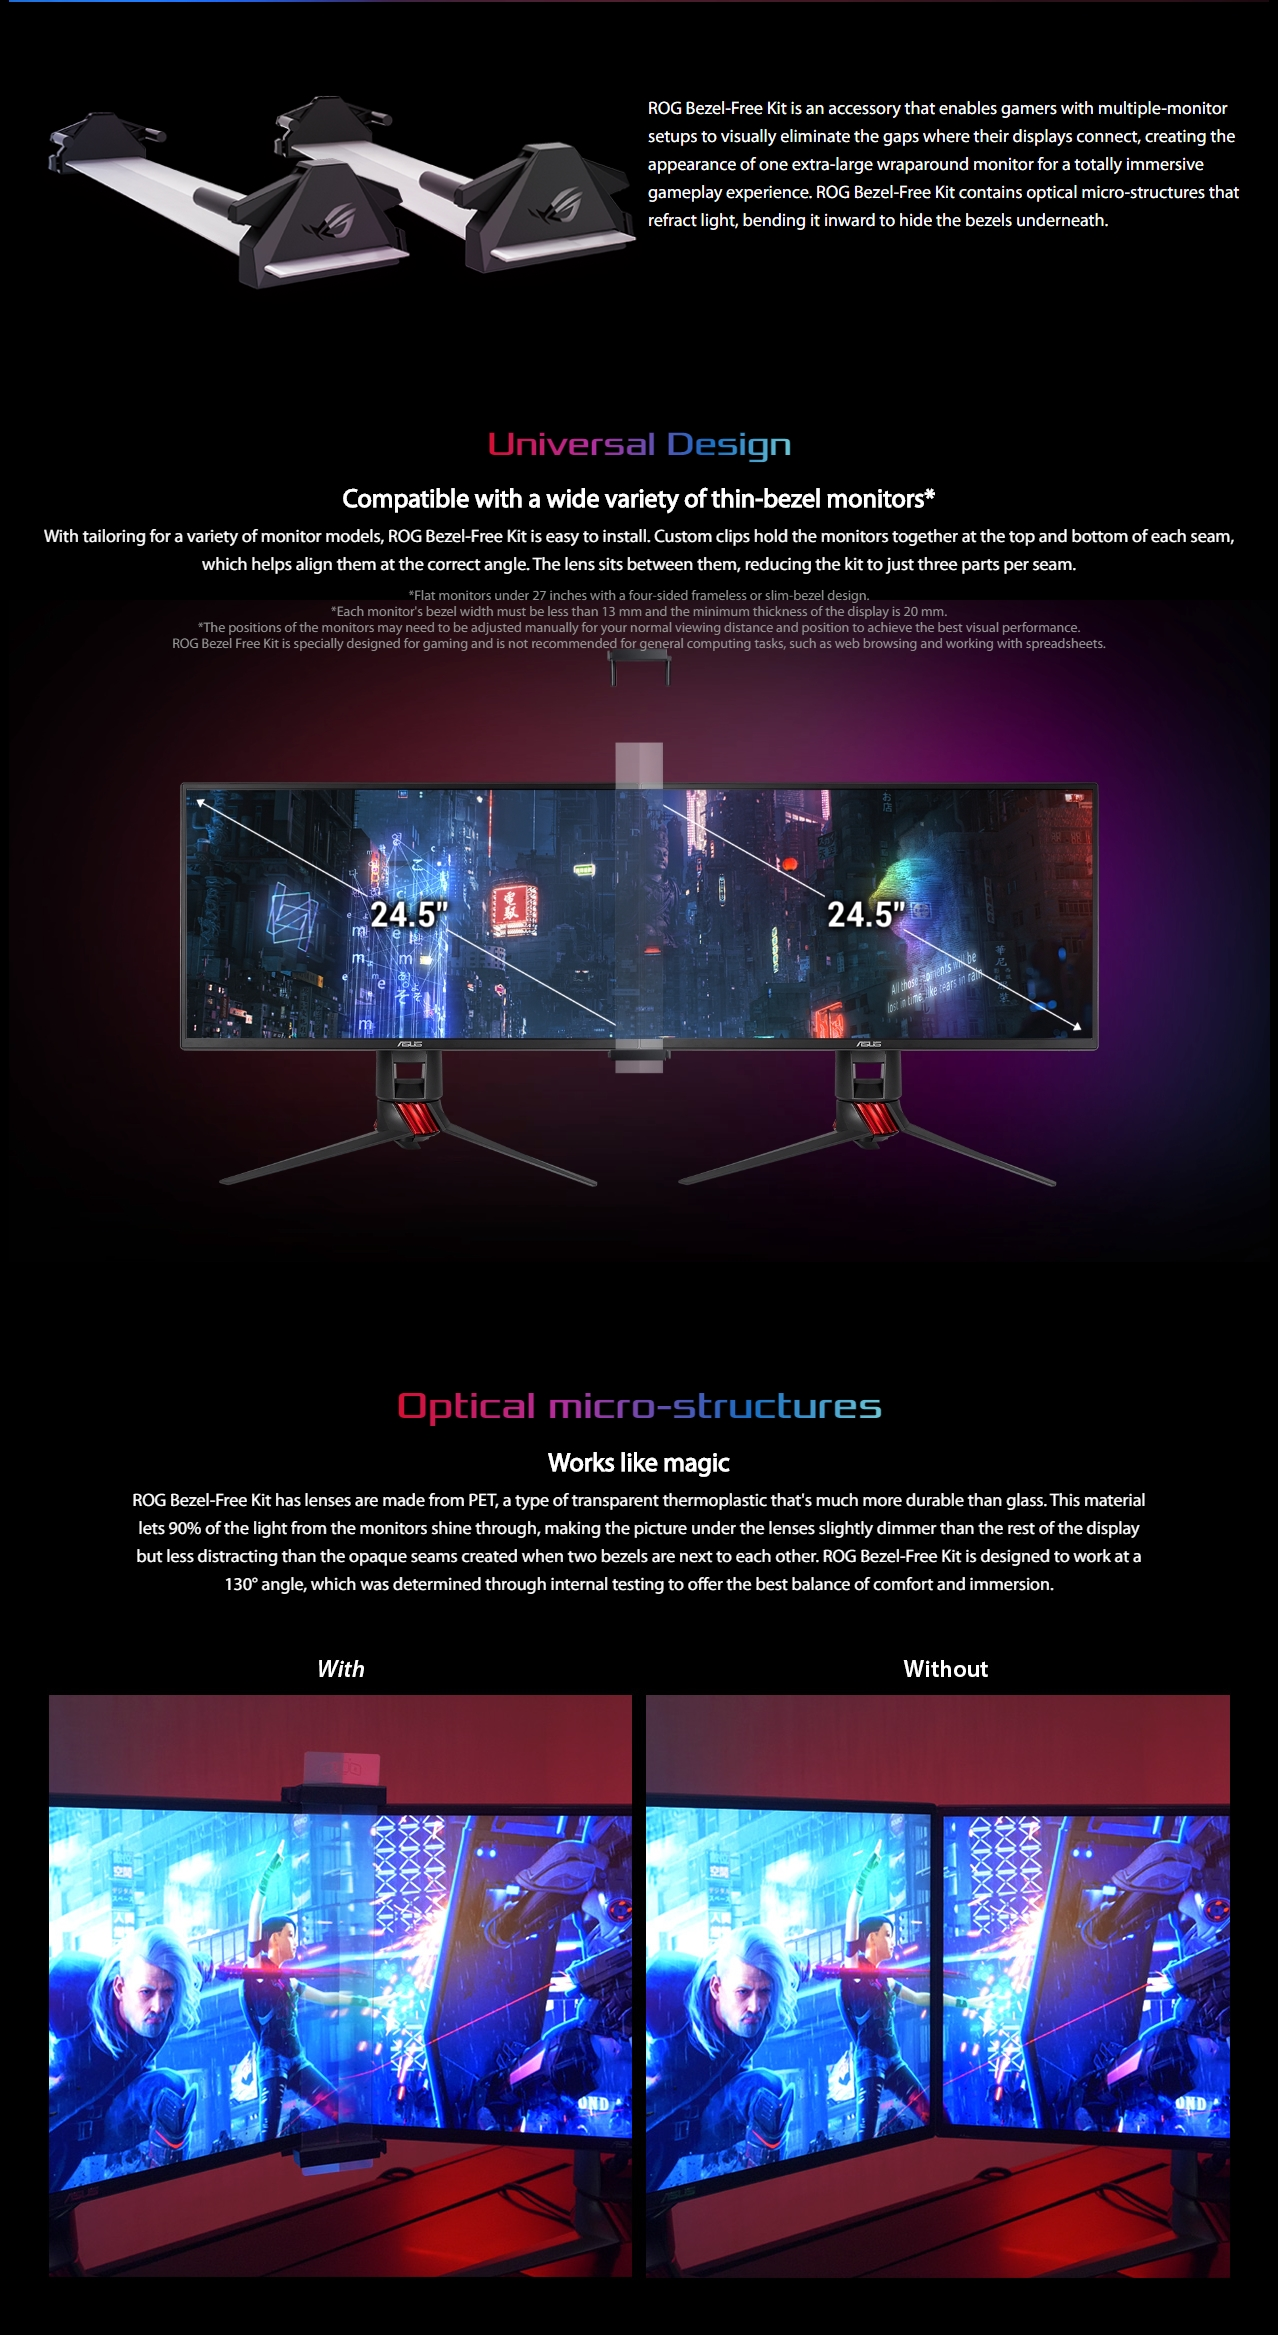 A large marketing image providing additional information about the product ASUS ROG Bezel-Free Multi Monitor Kit - Additional alt info not provided